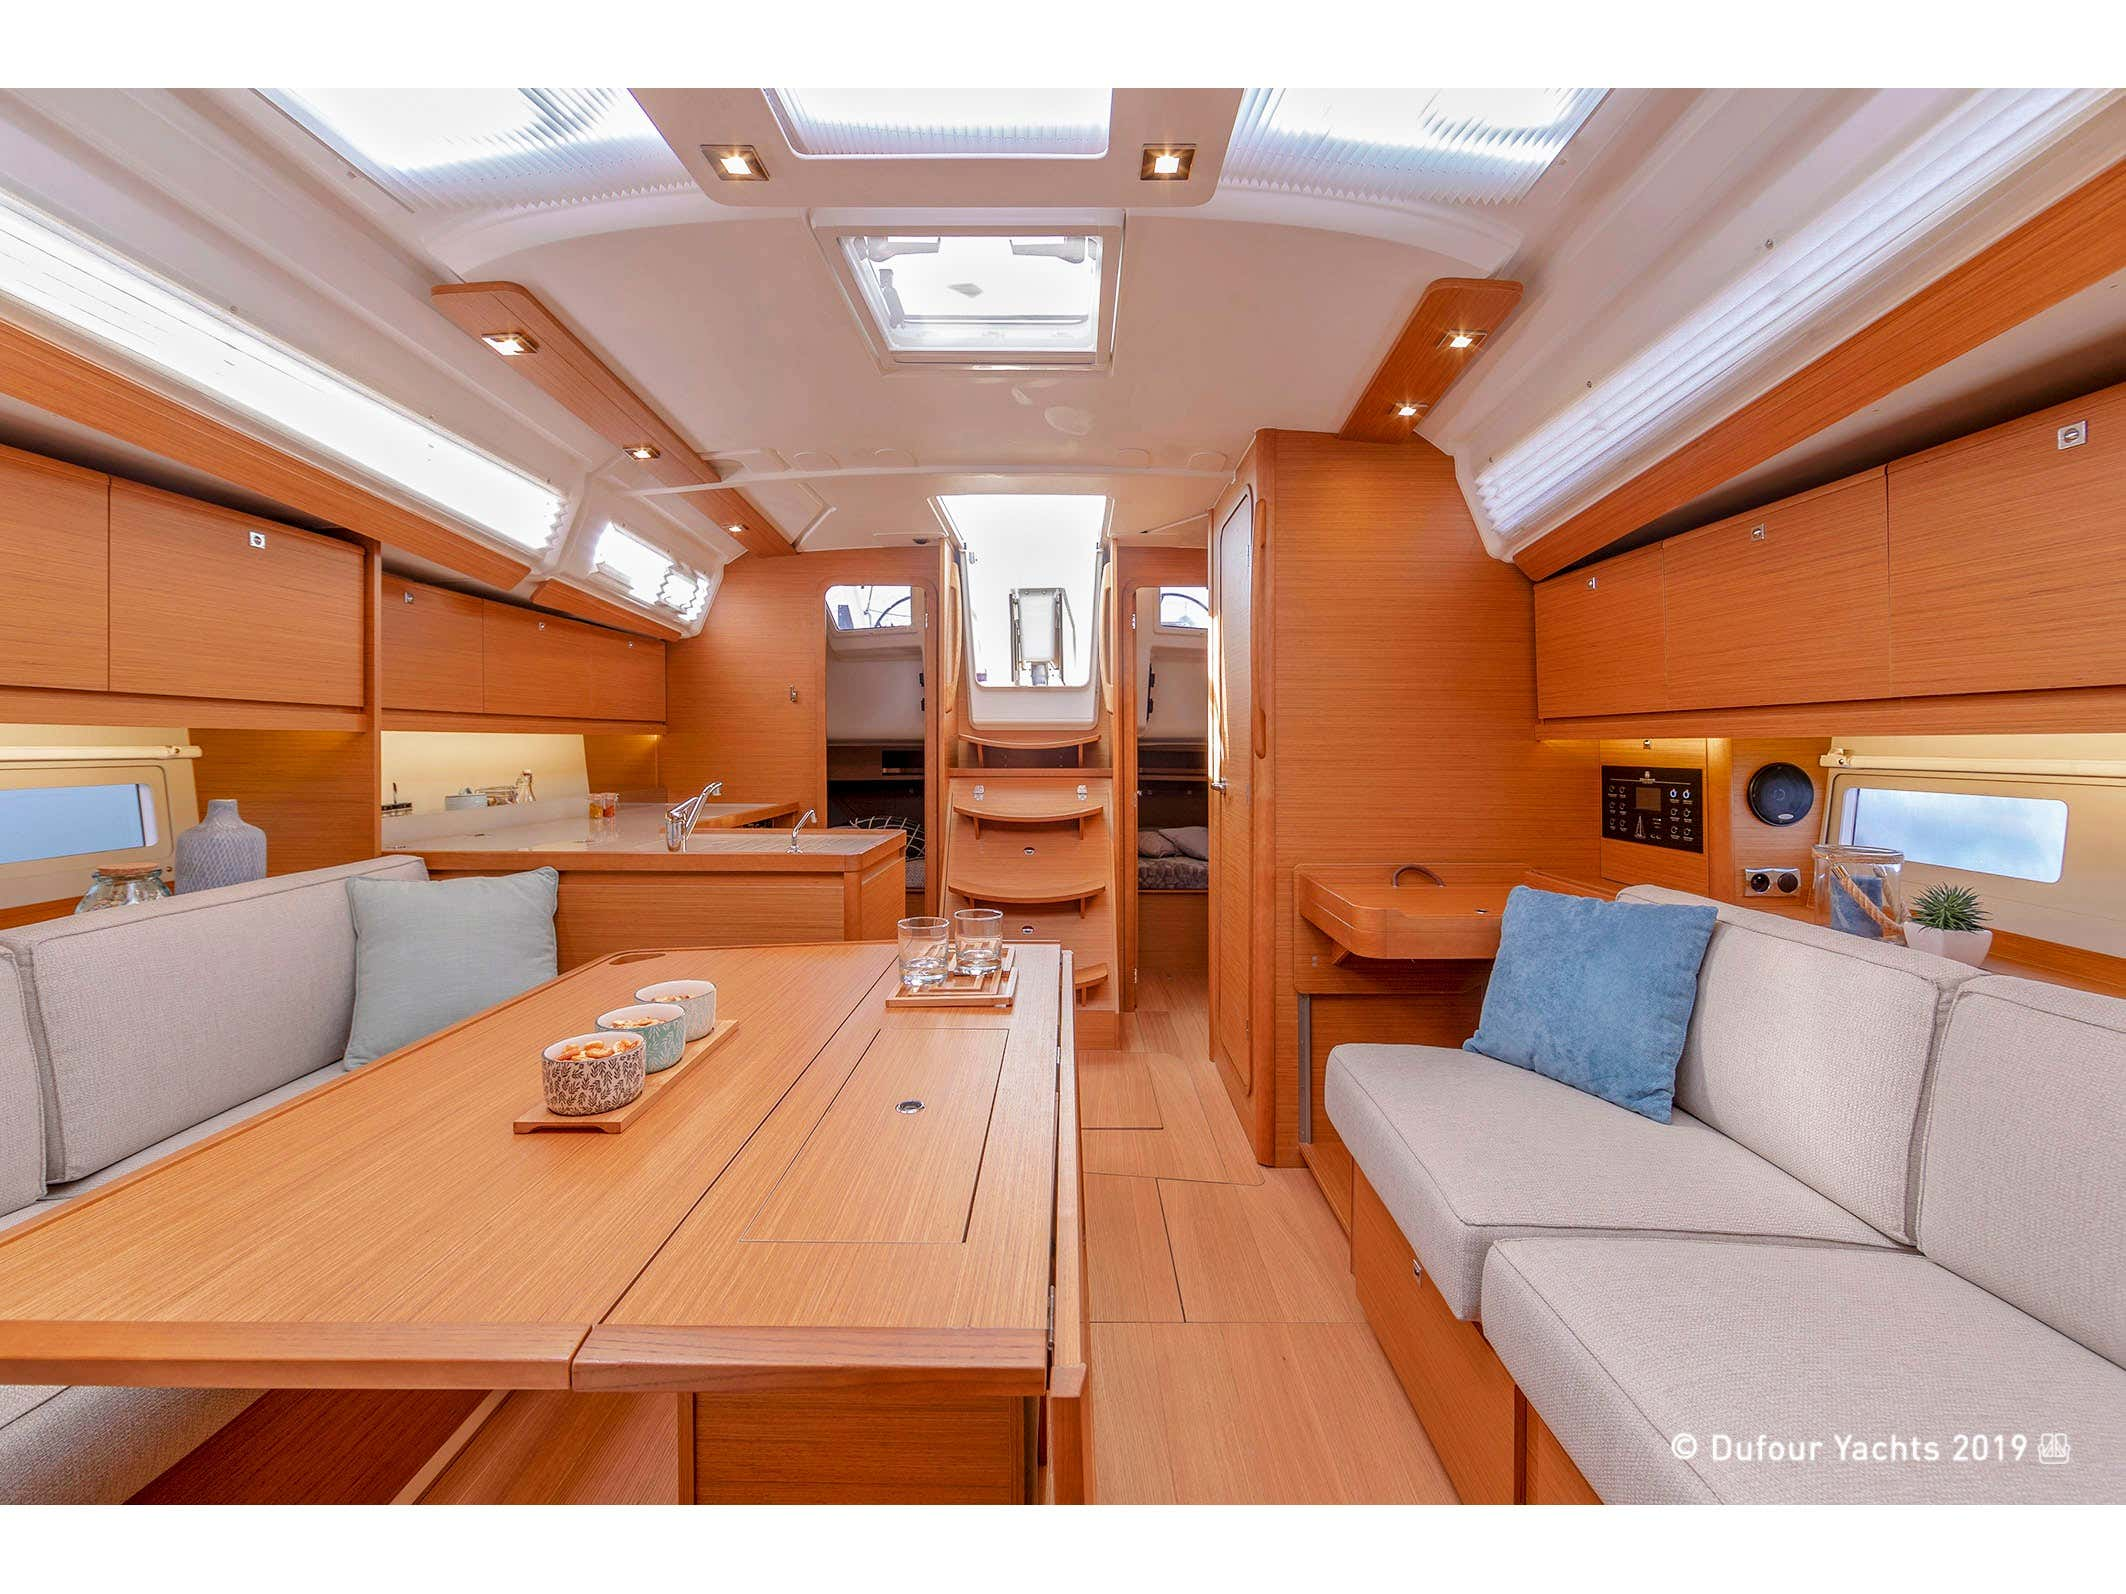 Dufour 390 Grand Large (Swell) Interior image - 2